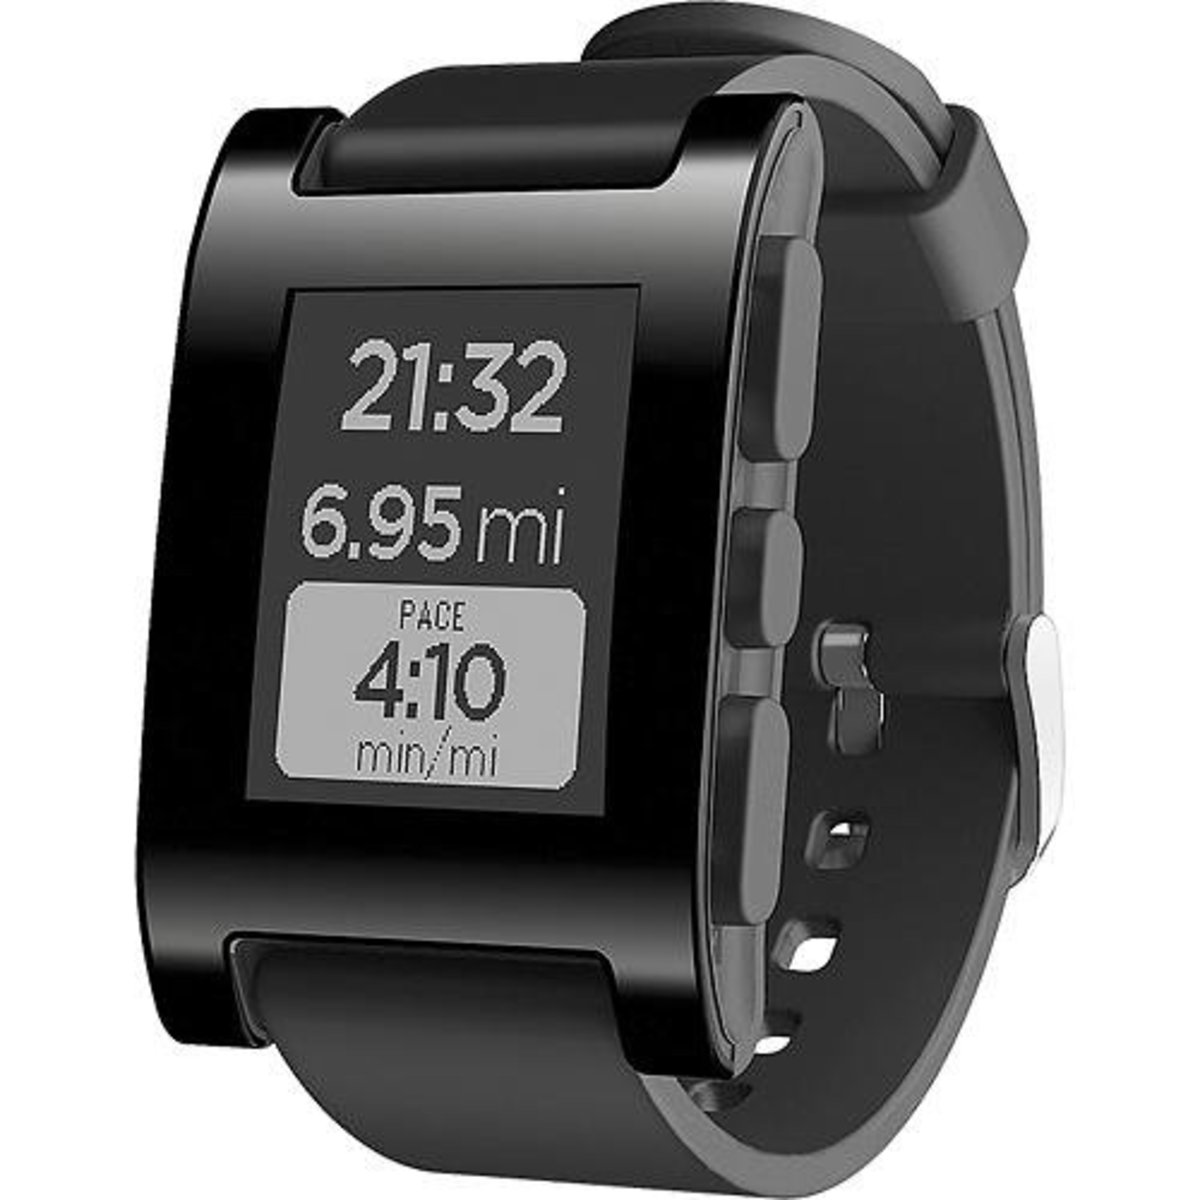 Pebble smartwatch.